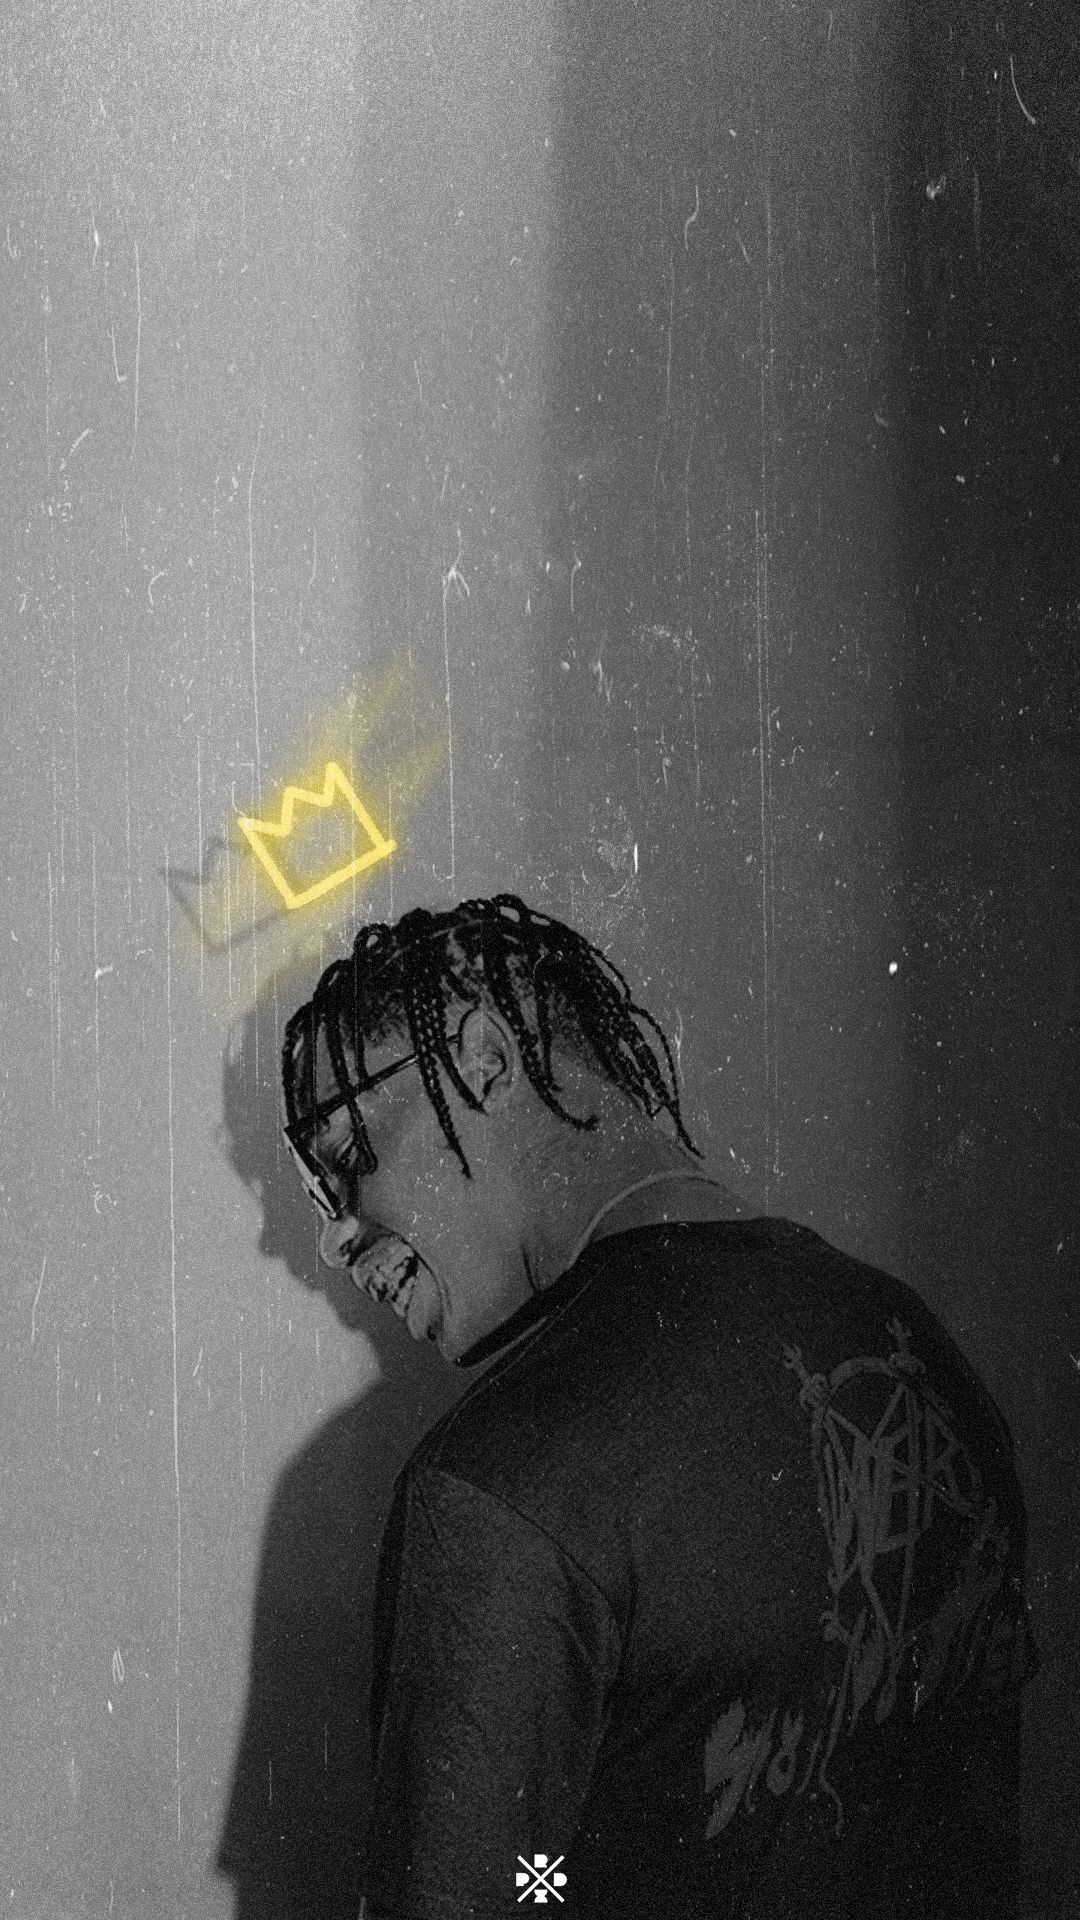 Aesthetic Travis Scott Iphone Wallpaper